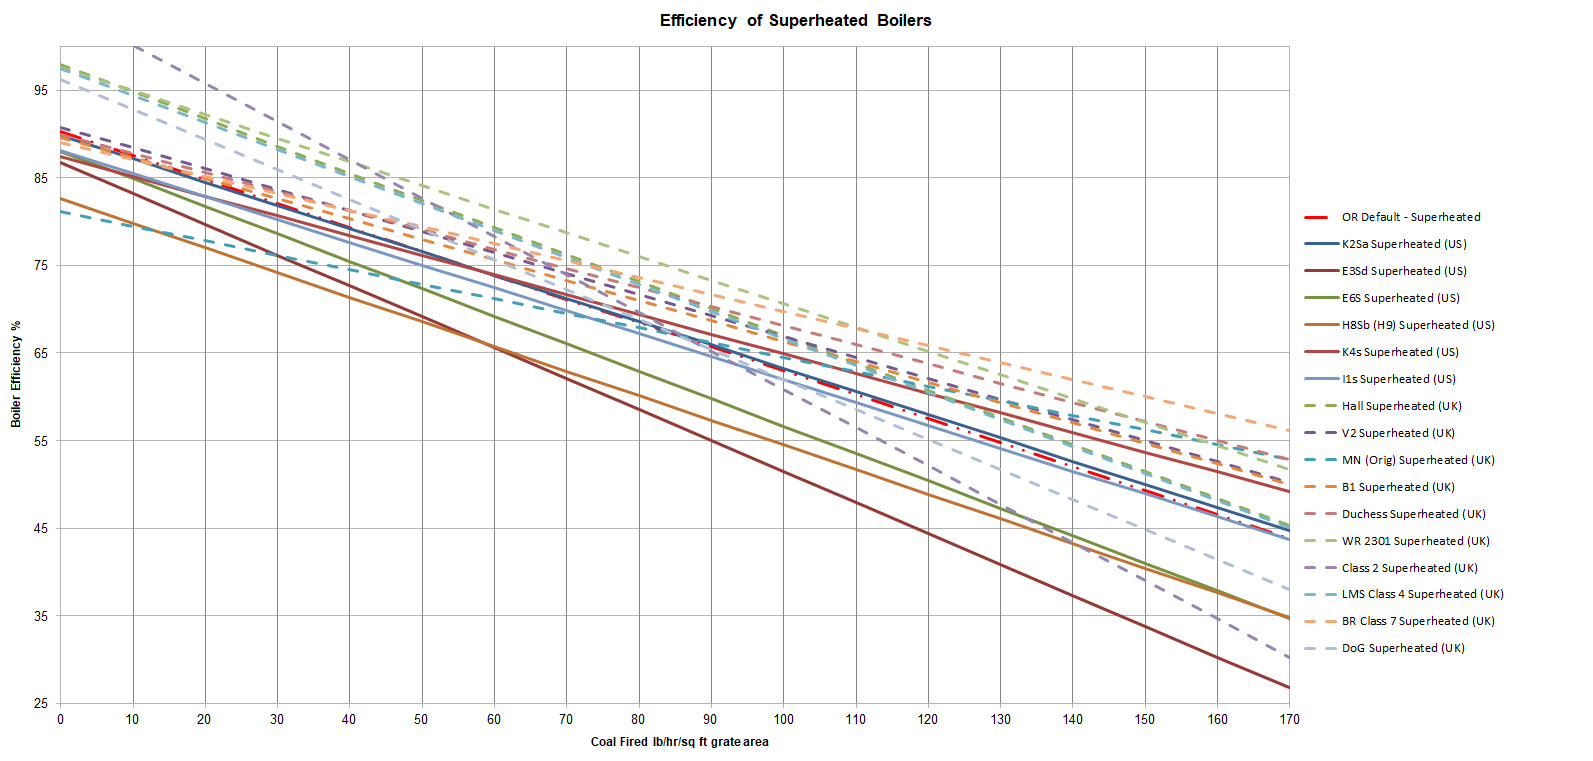 Boiler efficiency - Superheated